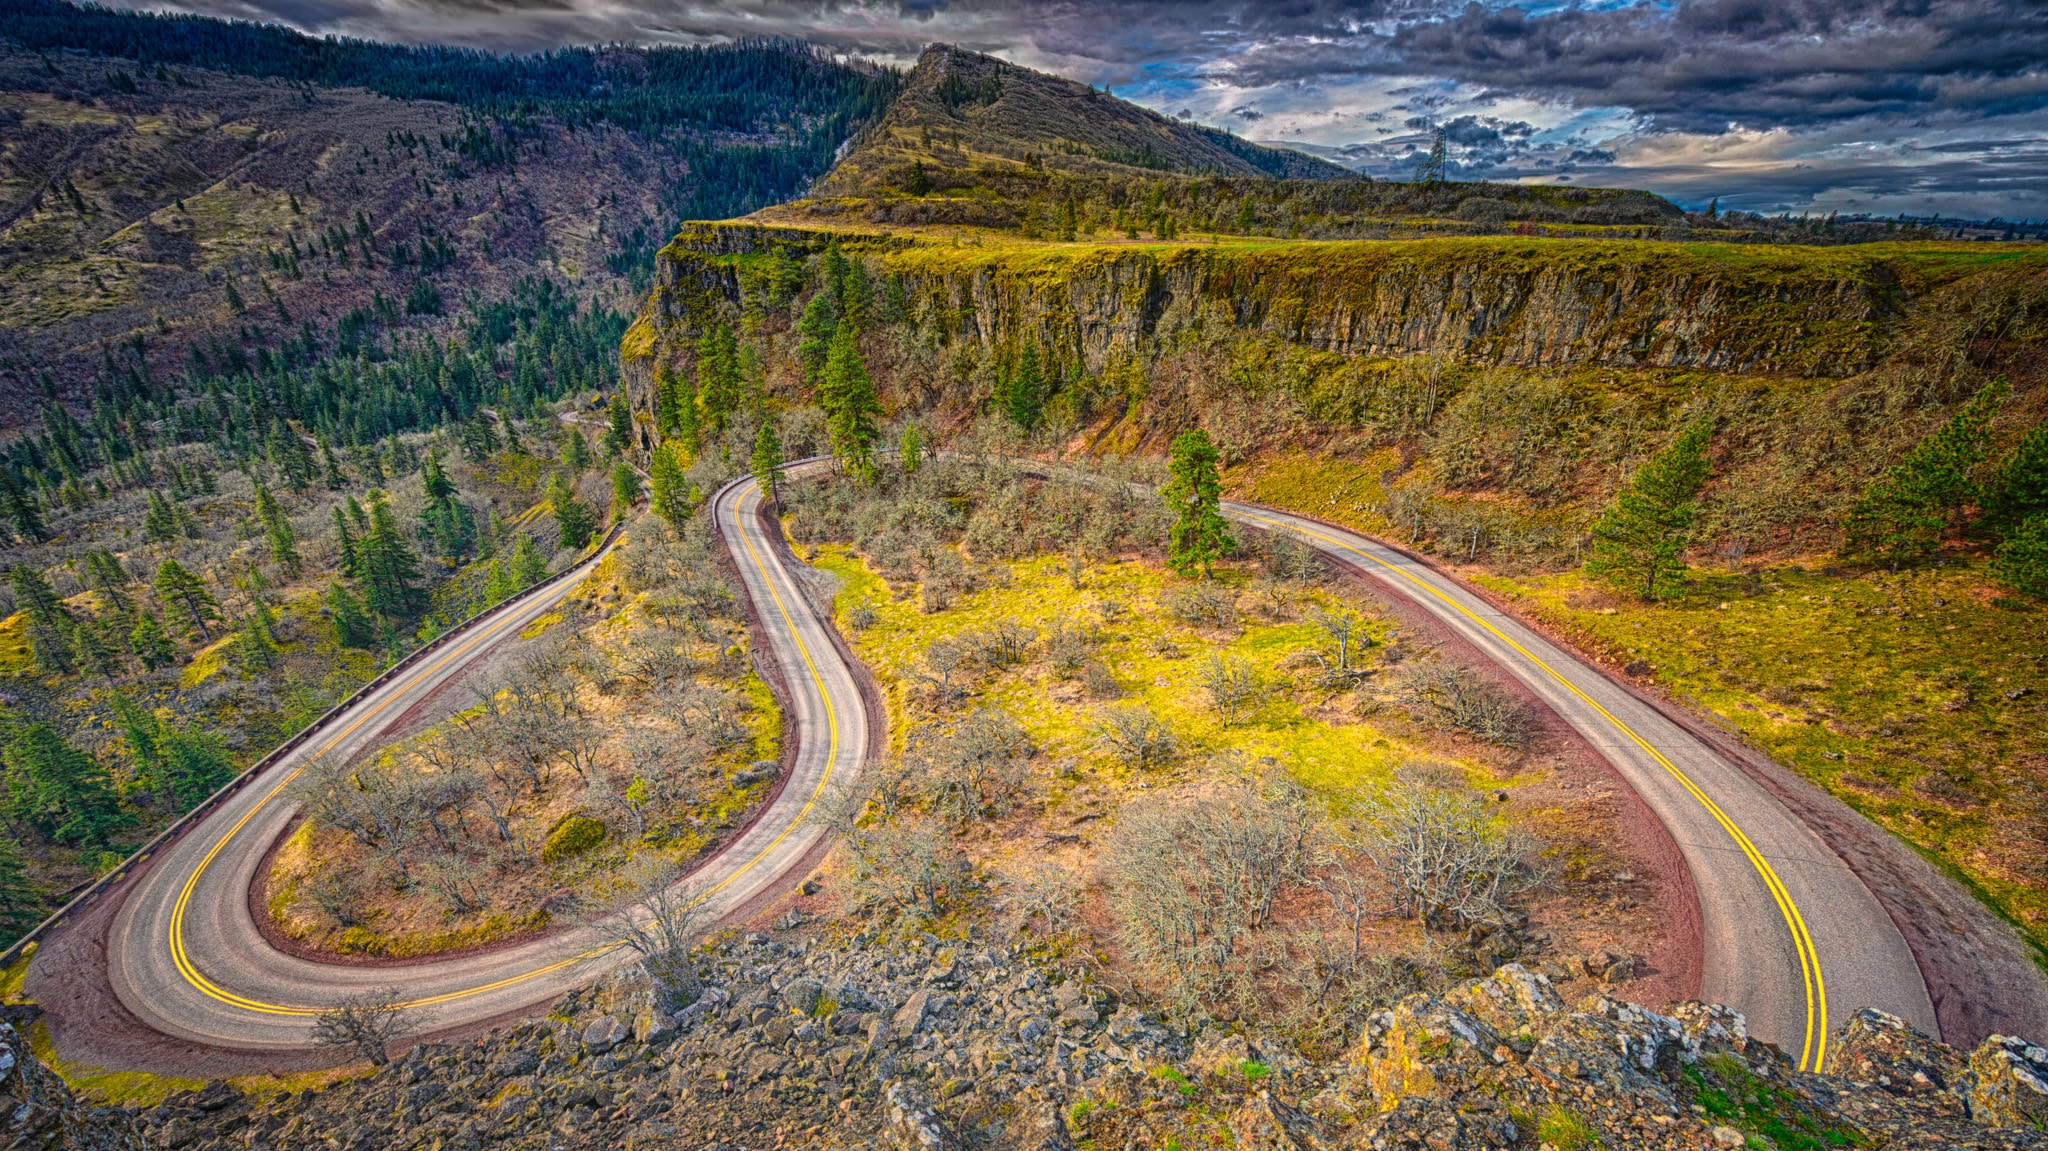 Can See The Loopy S Curve Historic Us Highway 30 Makes As It Winds Its Way South And West To I 84 That Cuts Through Columbia River Gorge In Oregon